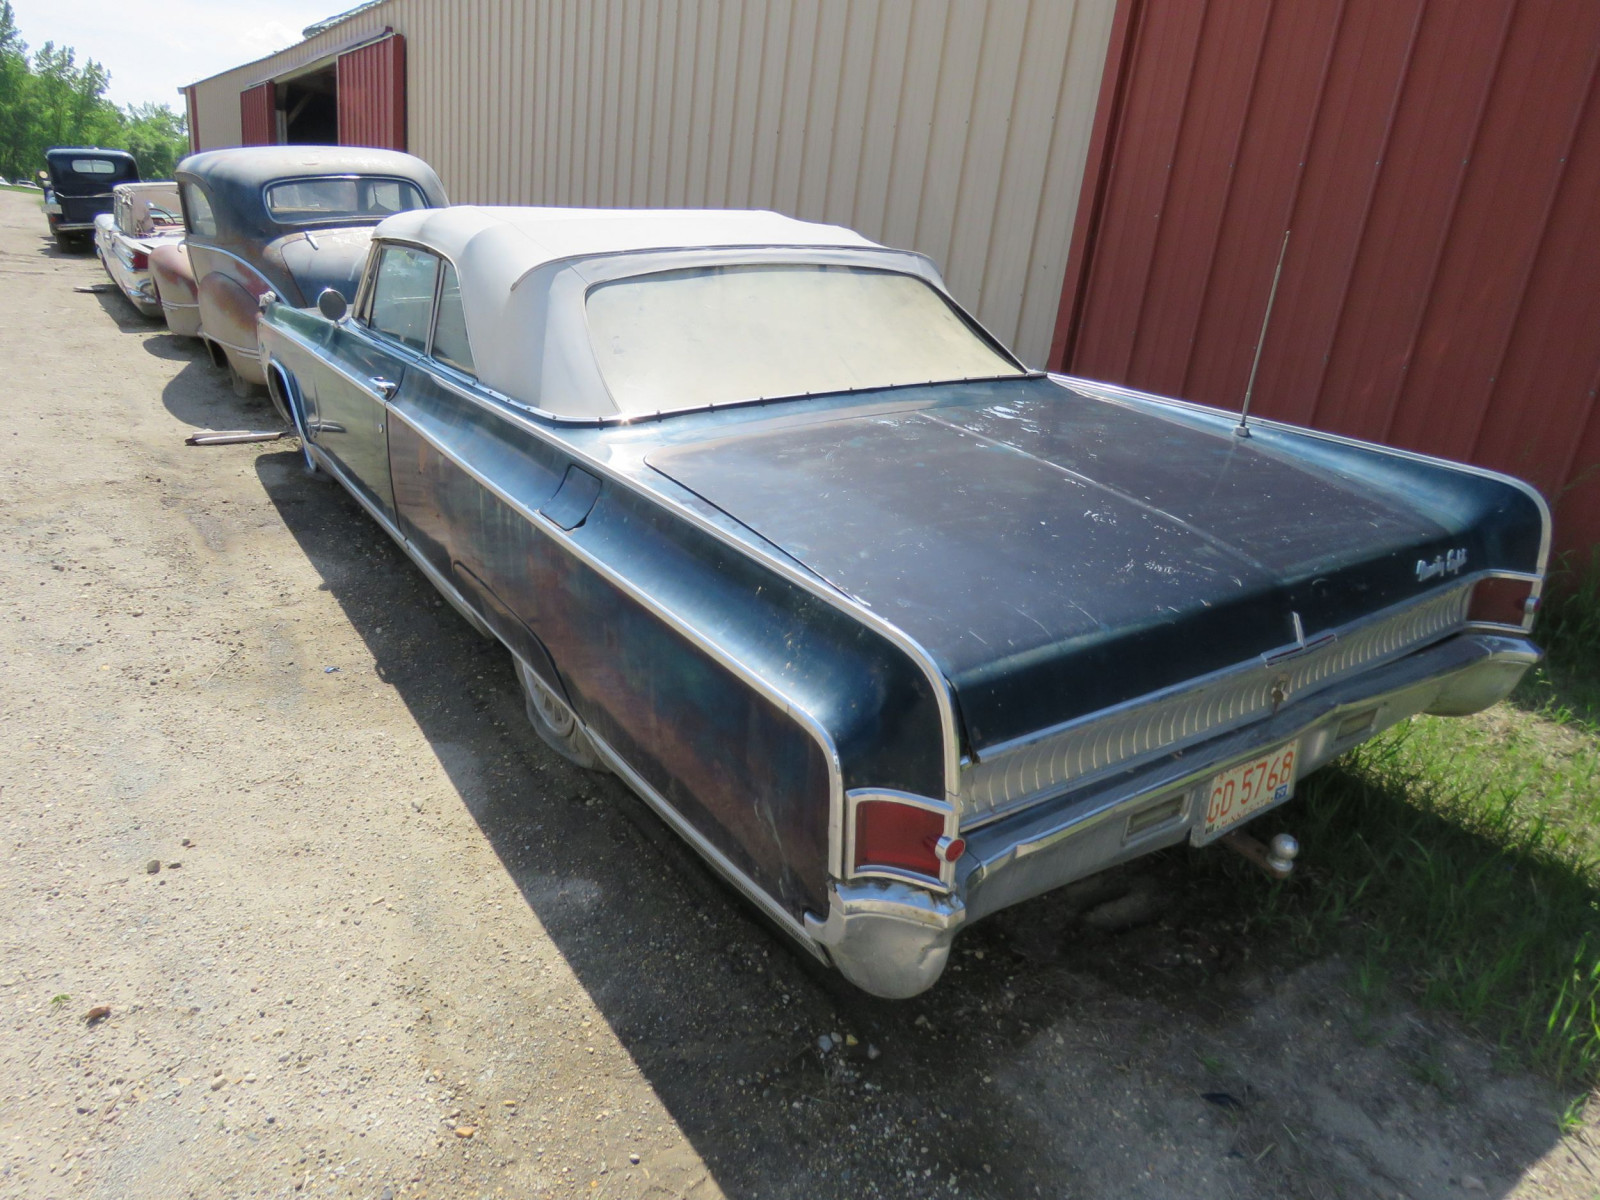 1964 Oldsmobile 98 Convertible 884M302945 - Image 6